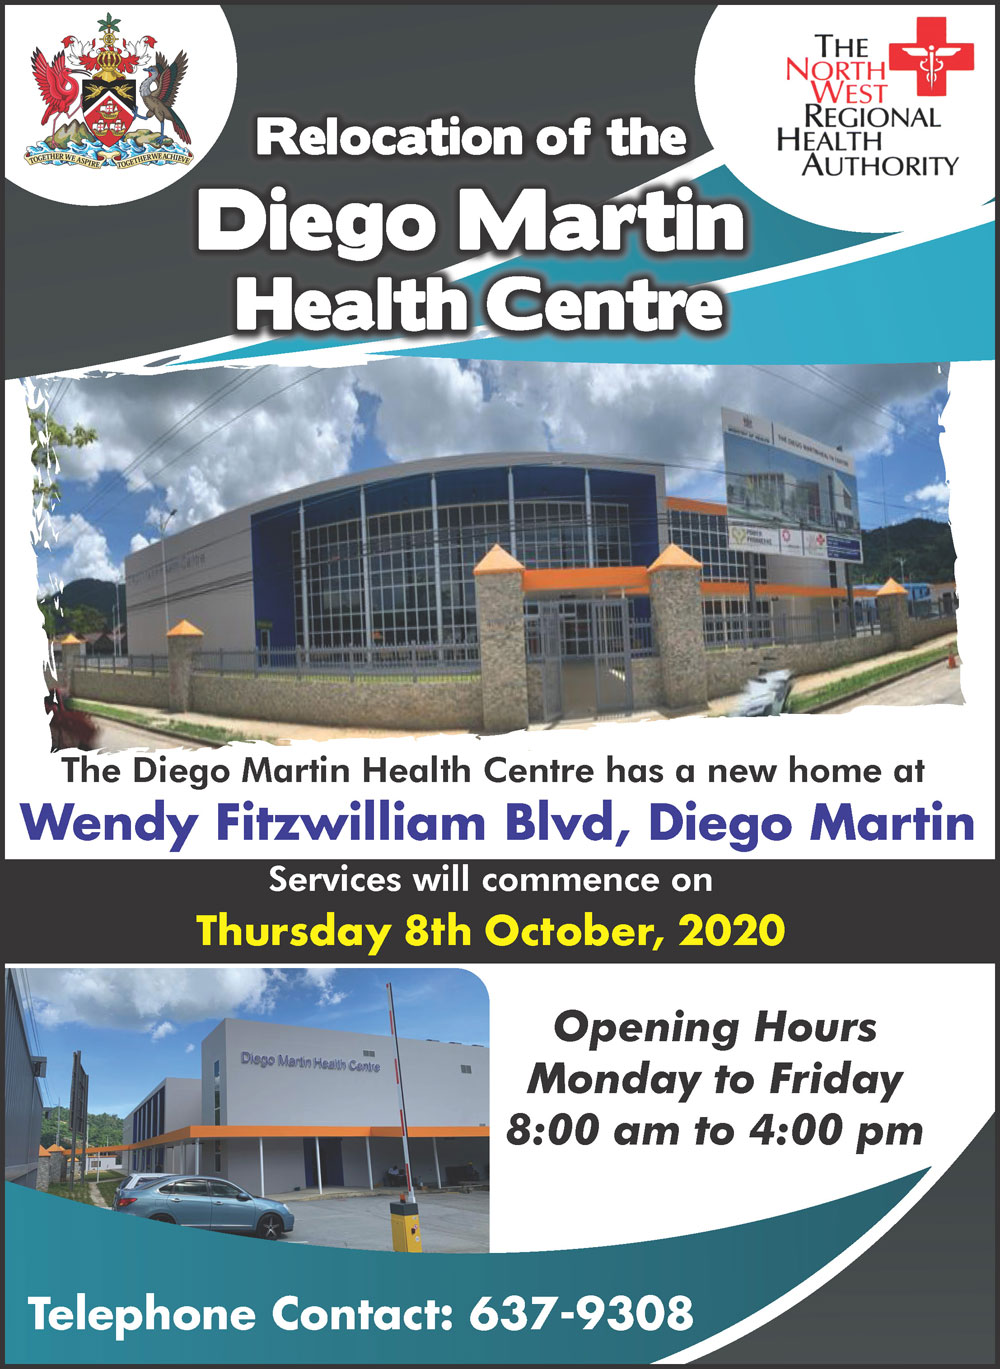 Relocation of Diego Martin Health Centre